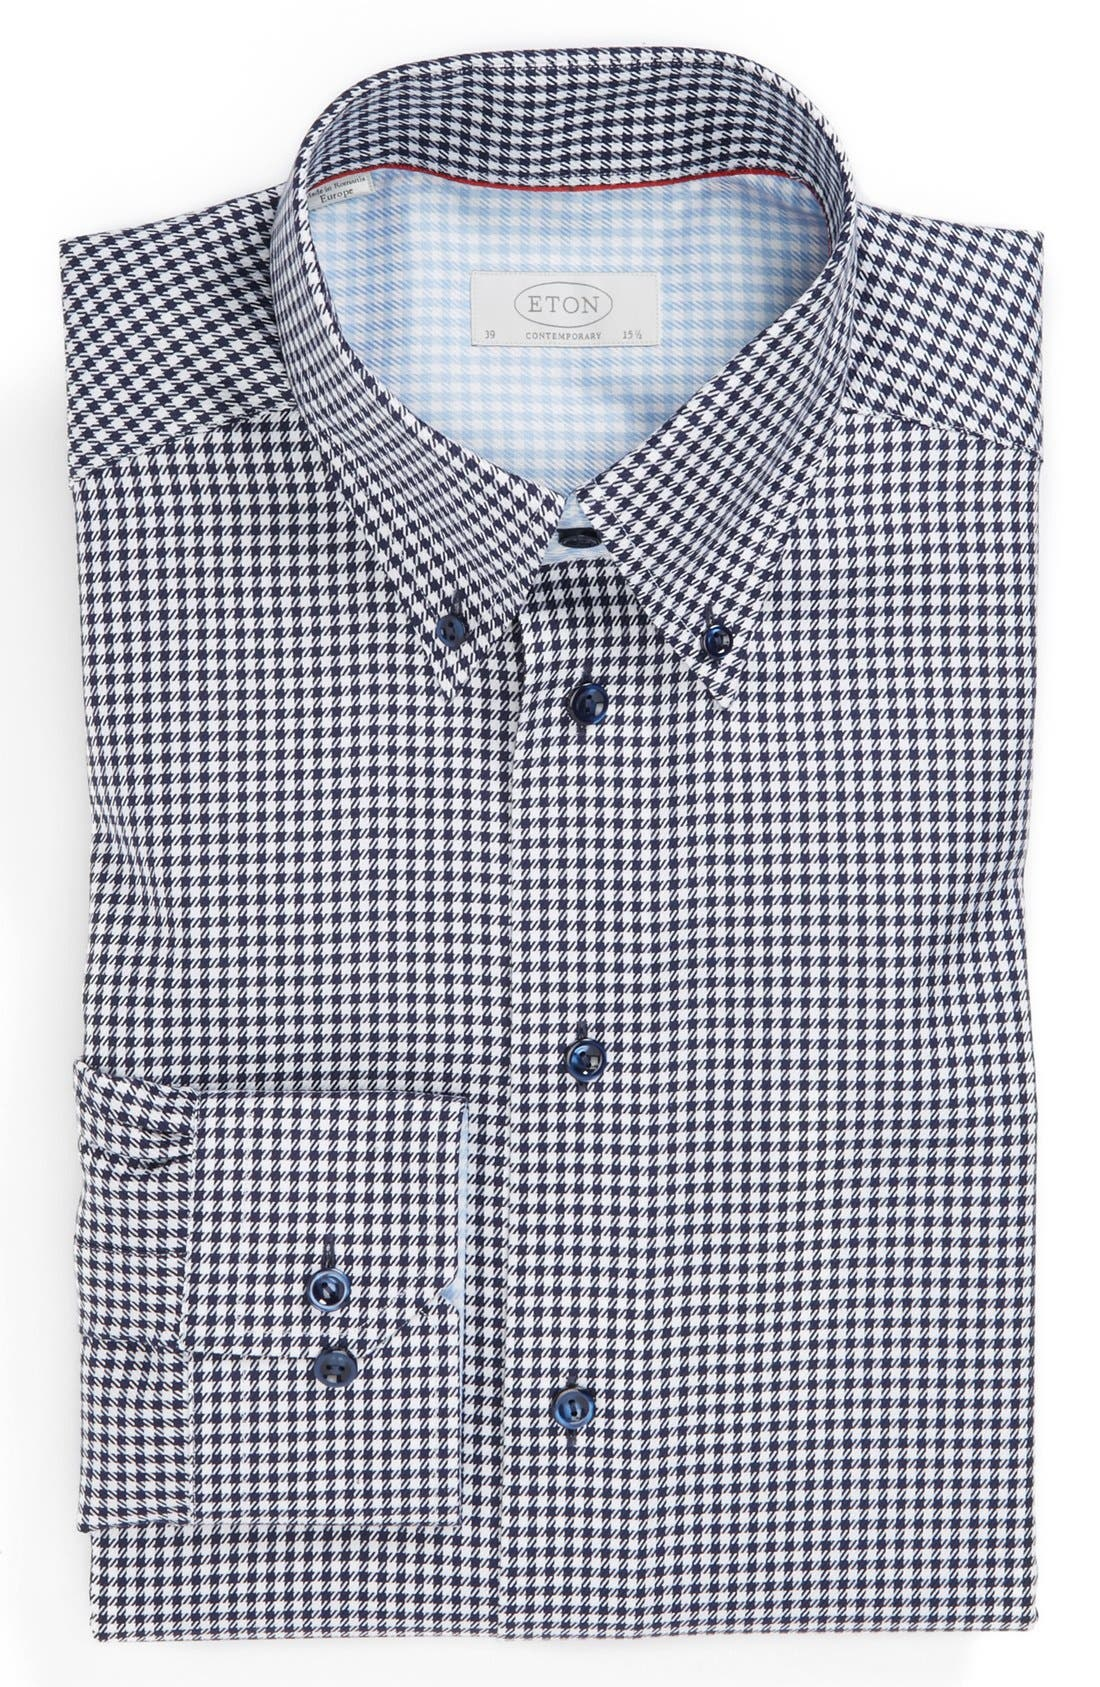 Alternate Image 1 Selected - Eton Contemporary Fit Non-Iron Dress Shirt